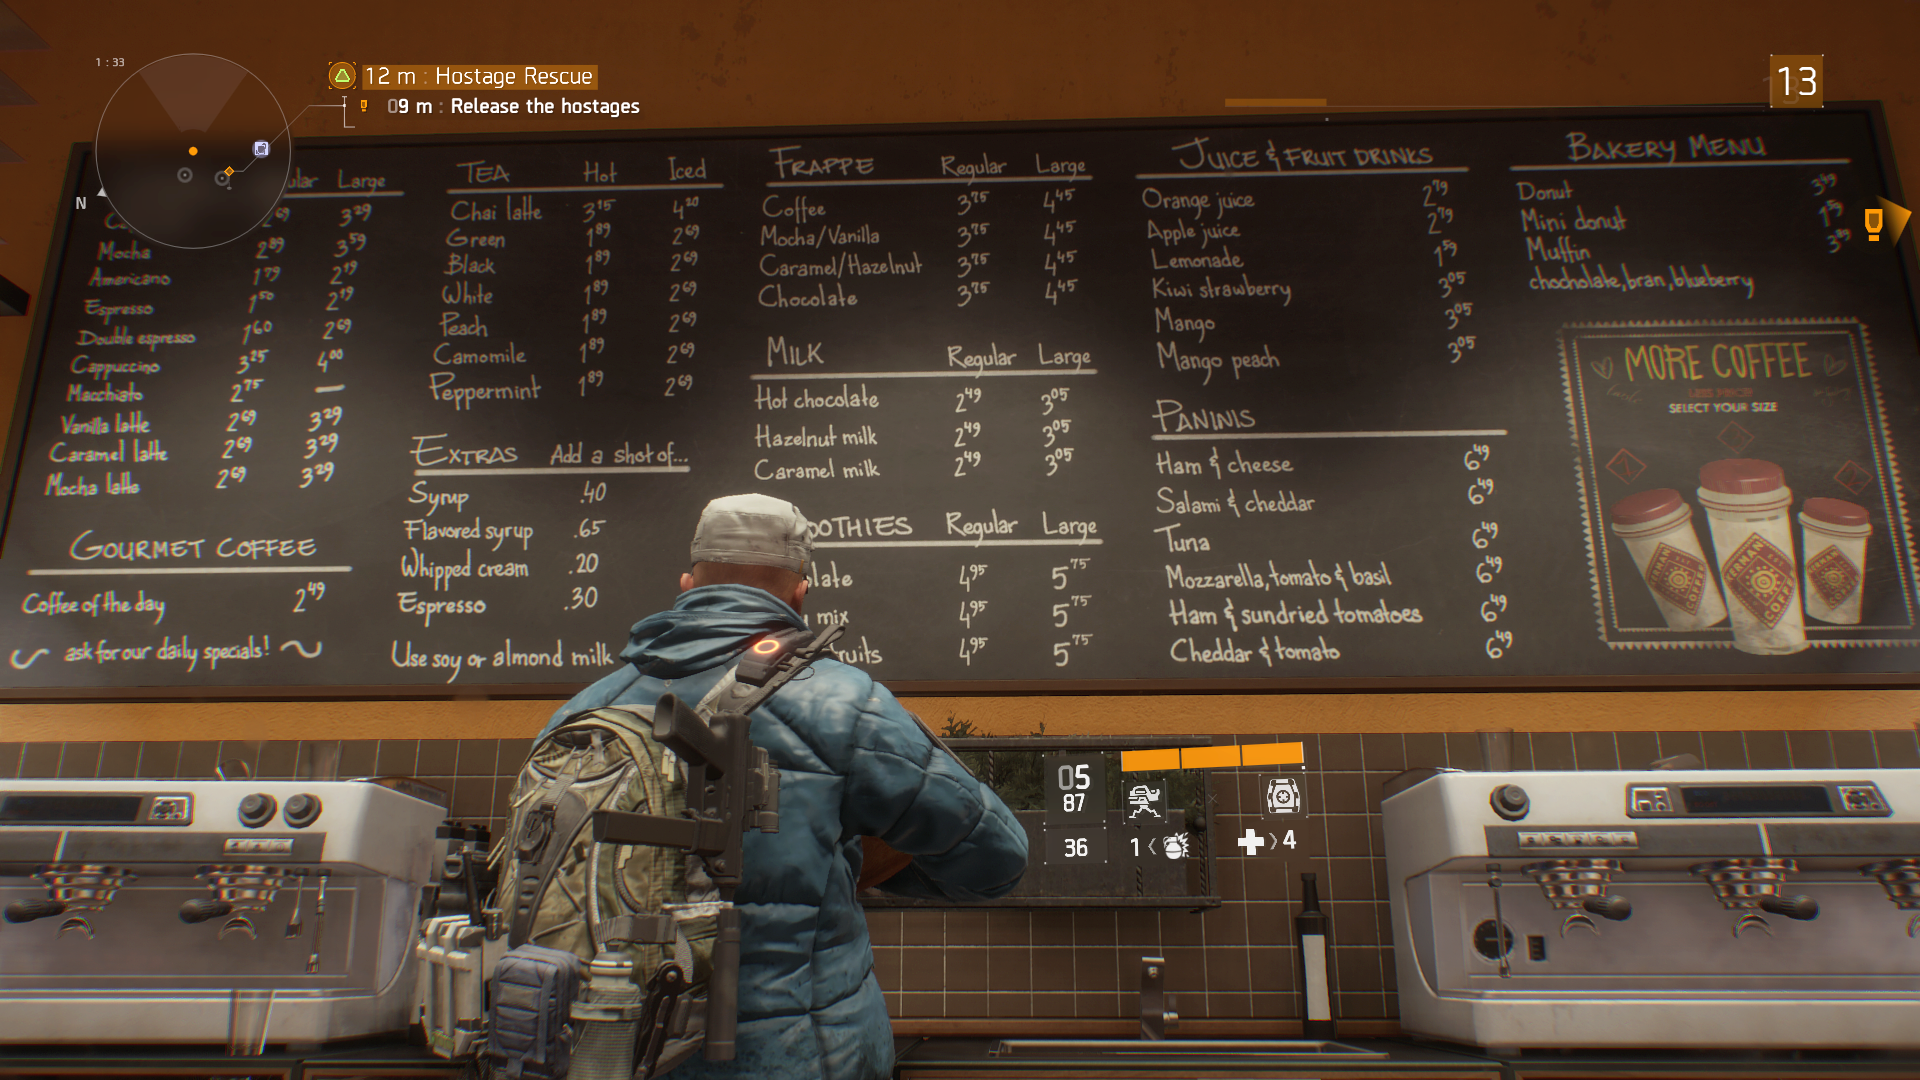 titanfall finding matchmaking It's at the point that the system has a hard time finding teams titanfall unfair matchmaking teammates of the appropriate skill level in mtachmaking timely manner.